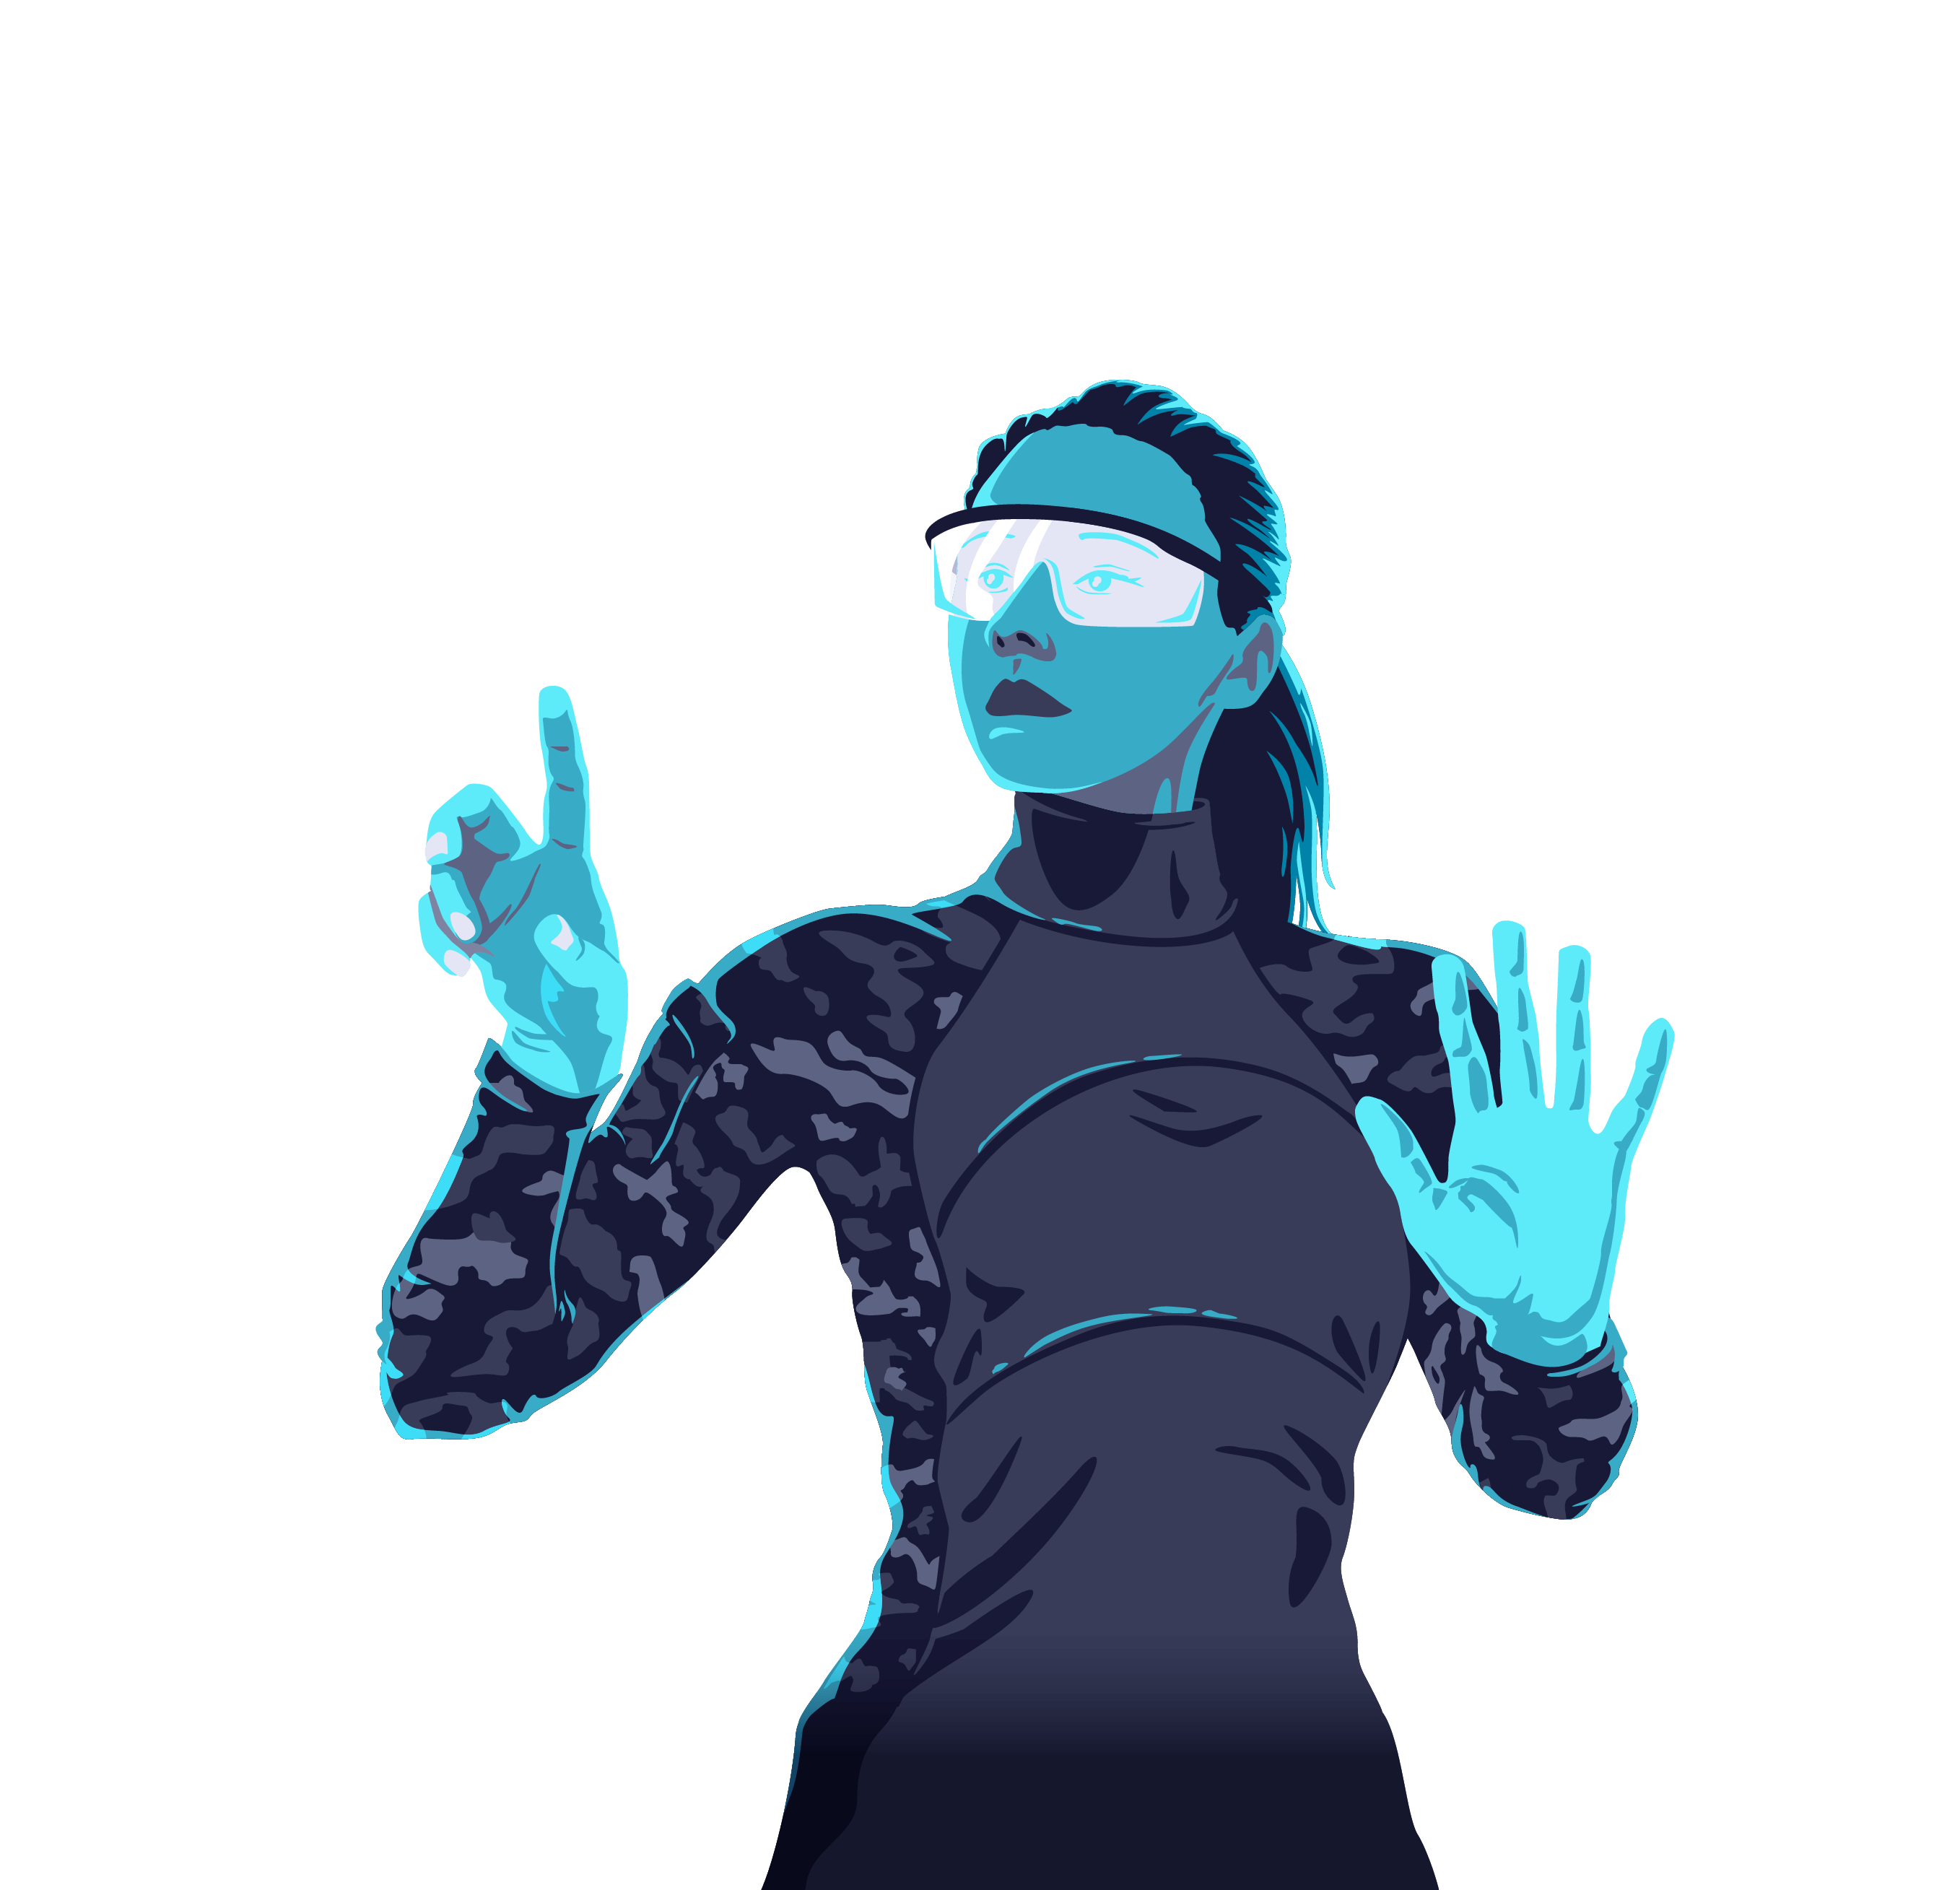 An illustration of a person looking through augmented reality goggles and moving technology along the conceptual acquisition pipeline.